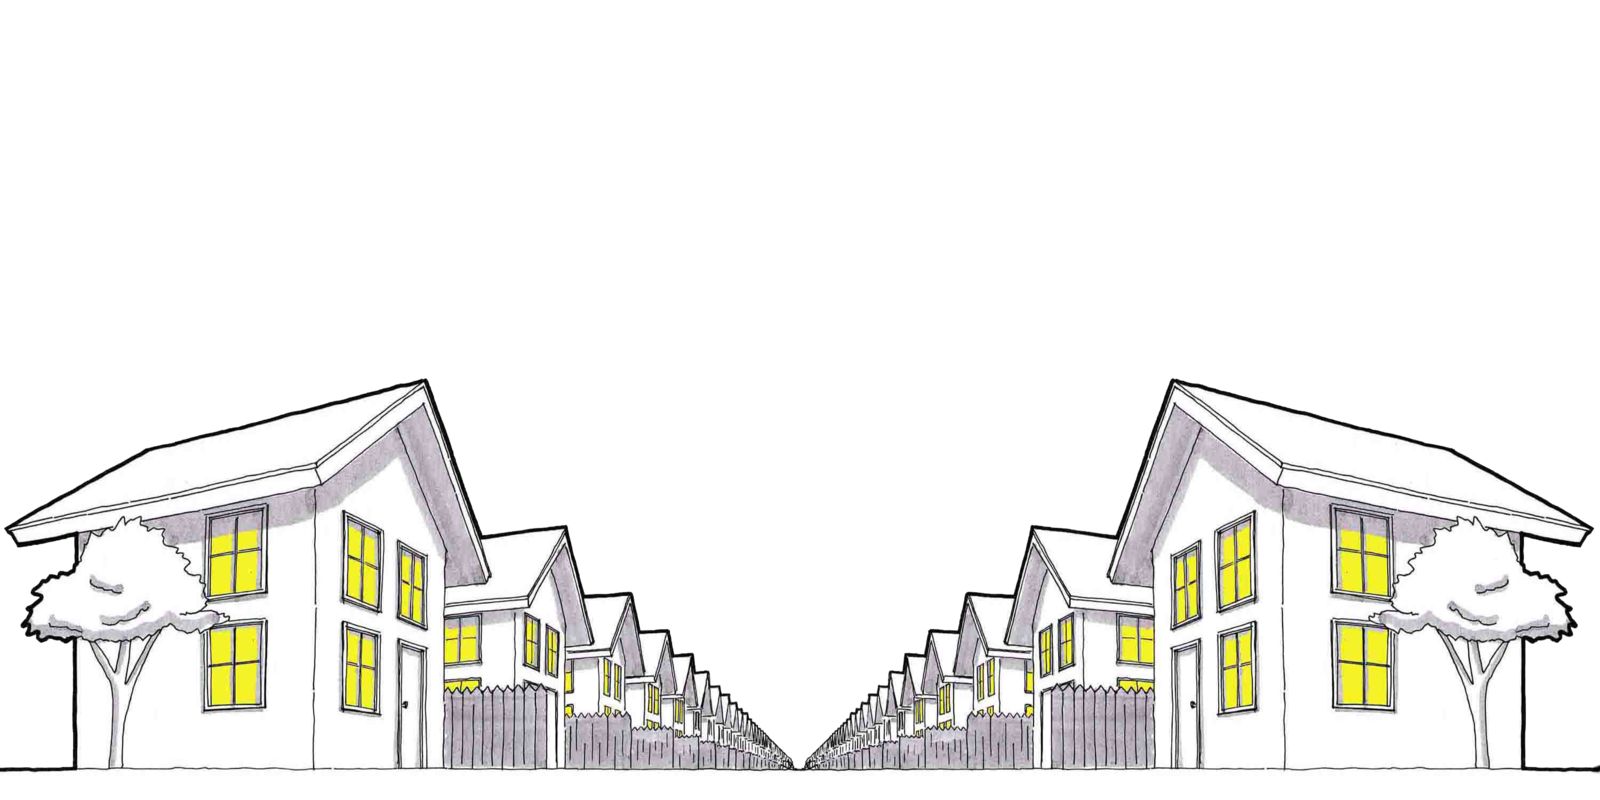 Drawing of houses on a street with lights on